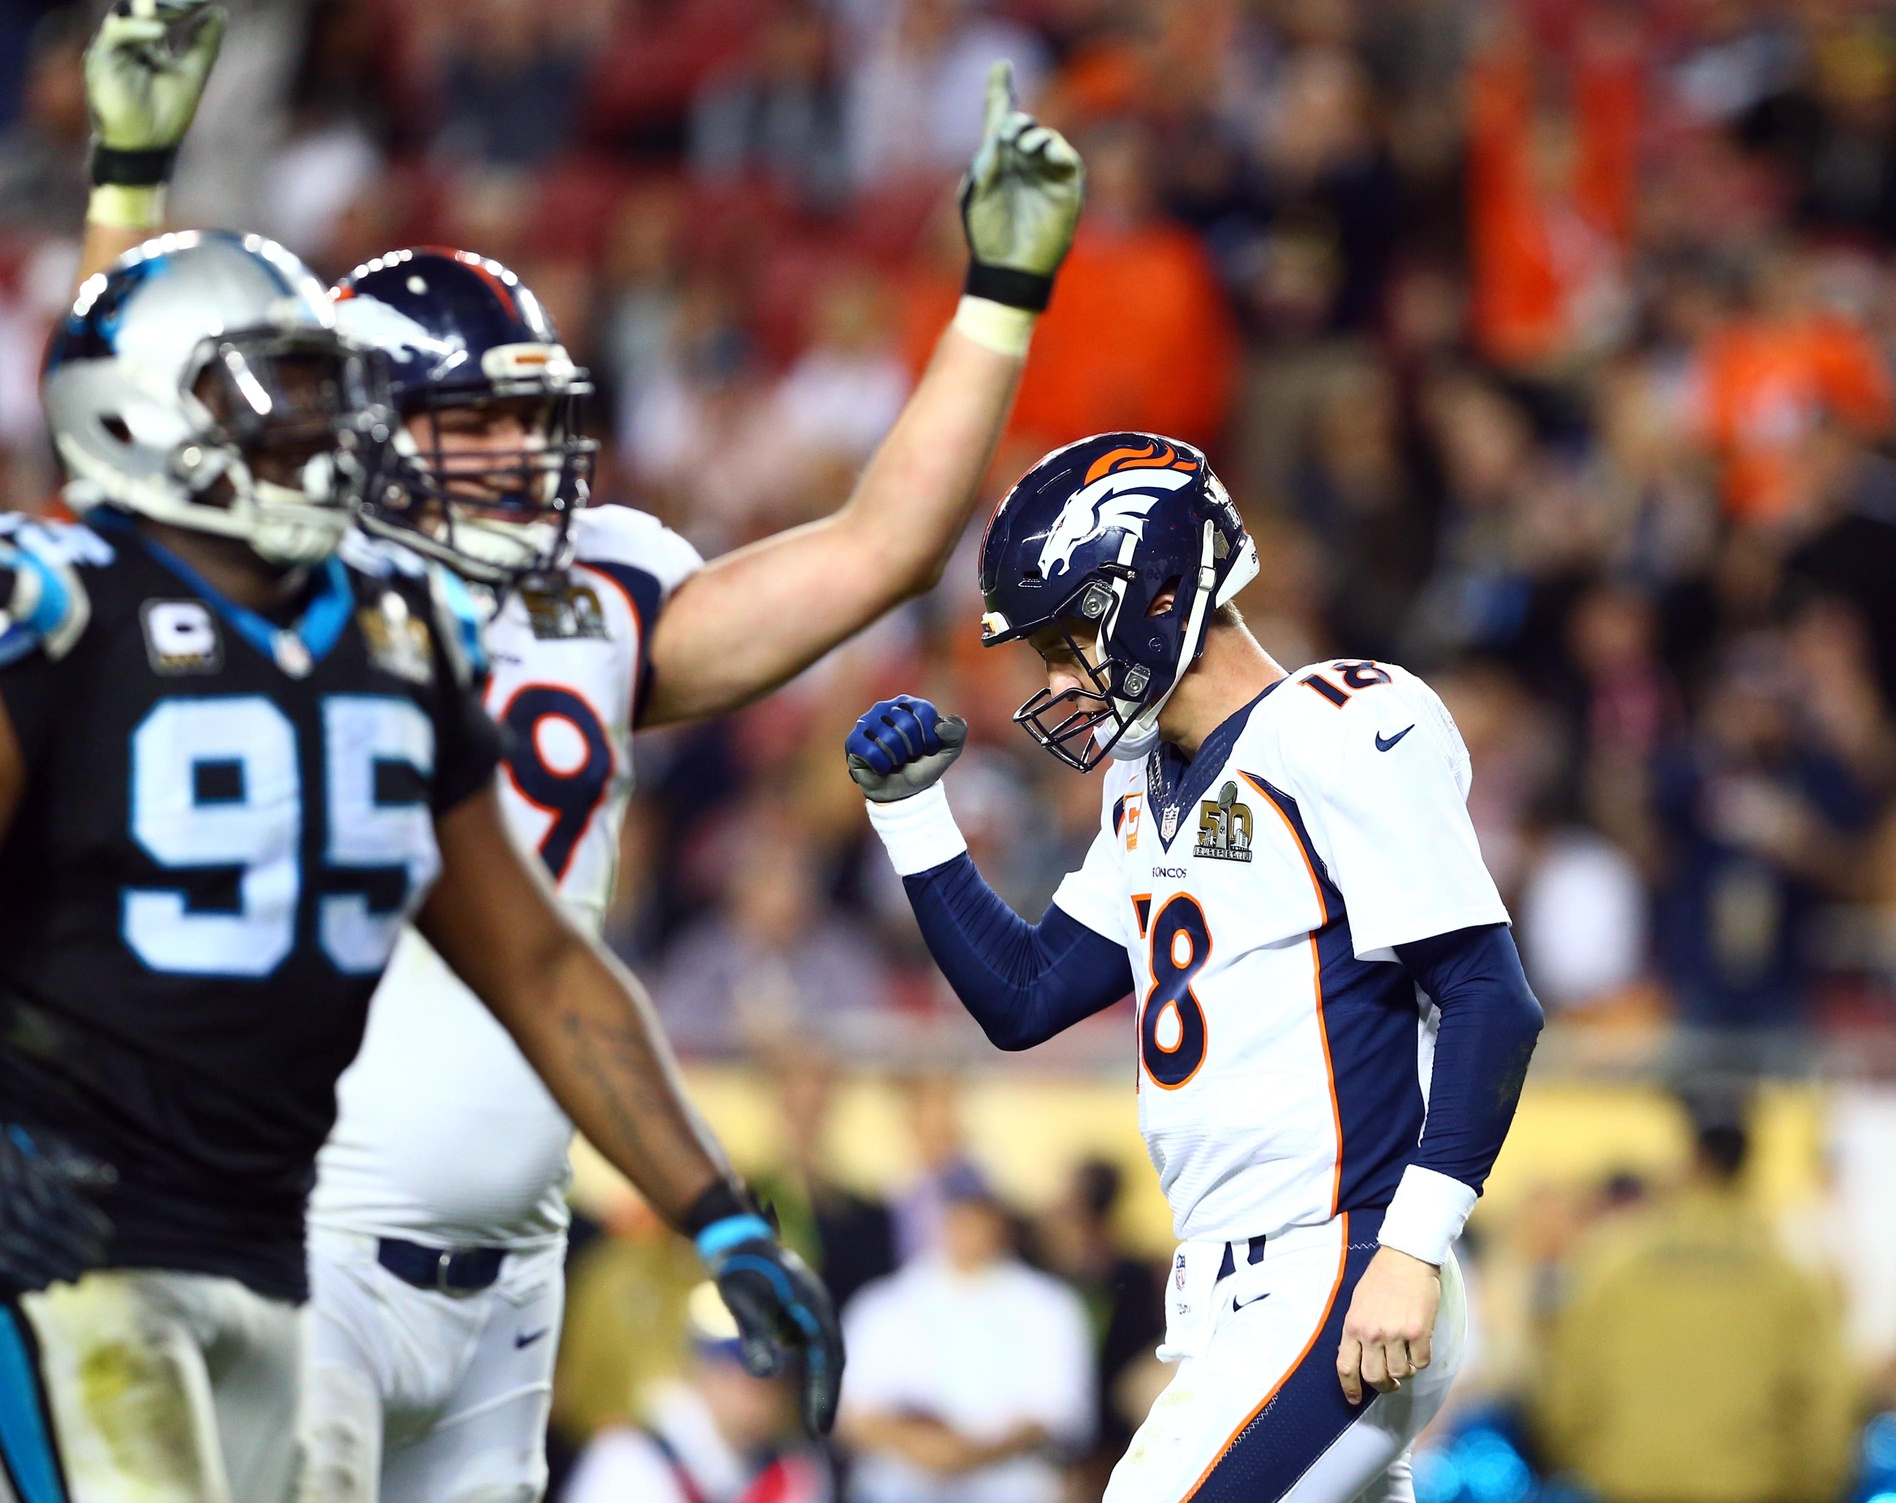 finest selection 03414 54614 How Peyton Manning came to choose Tennessee over Ole Miss